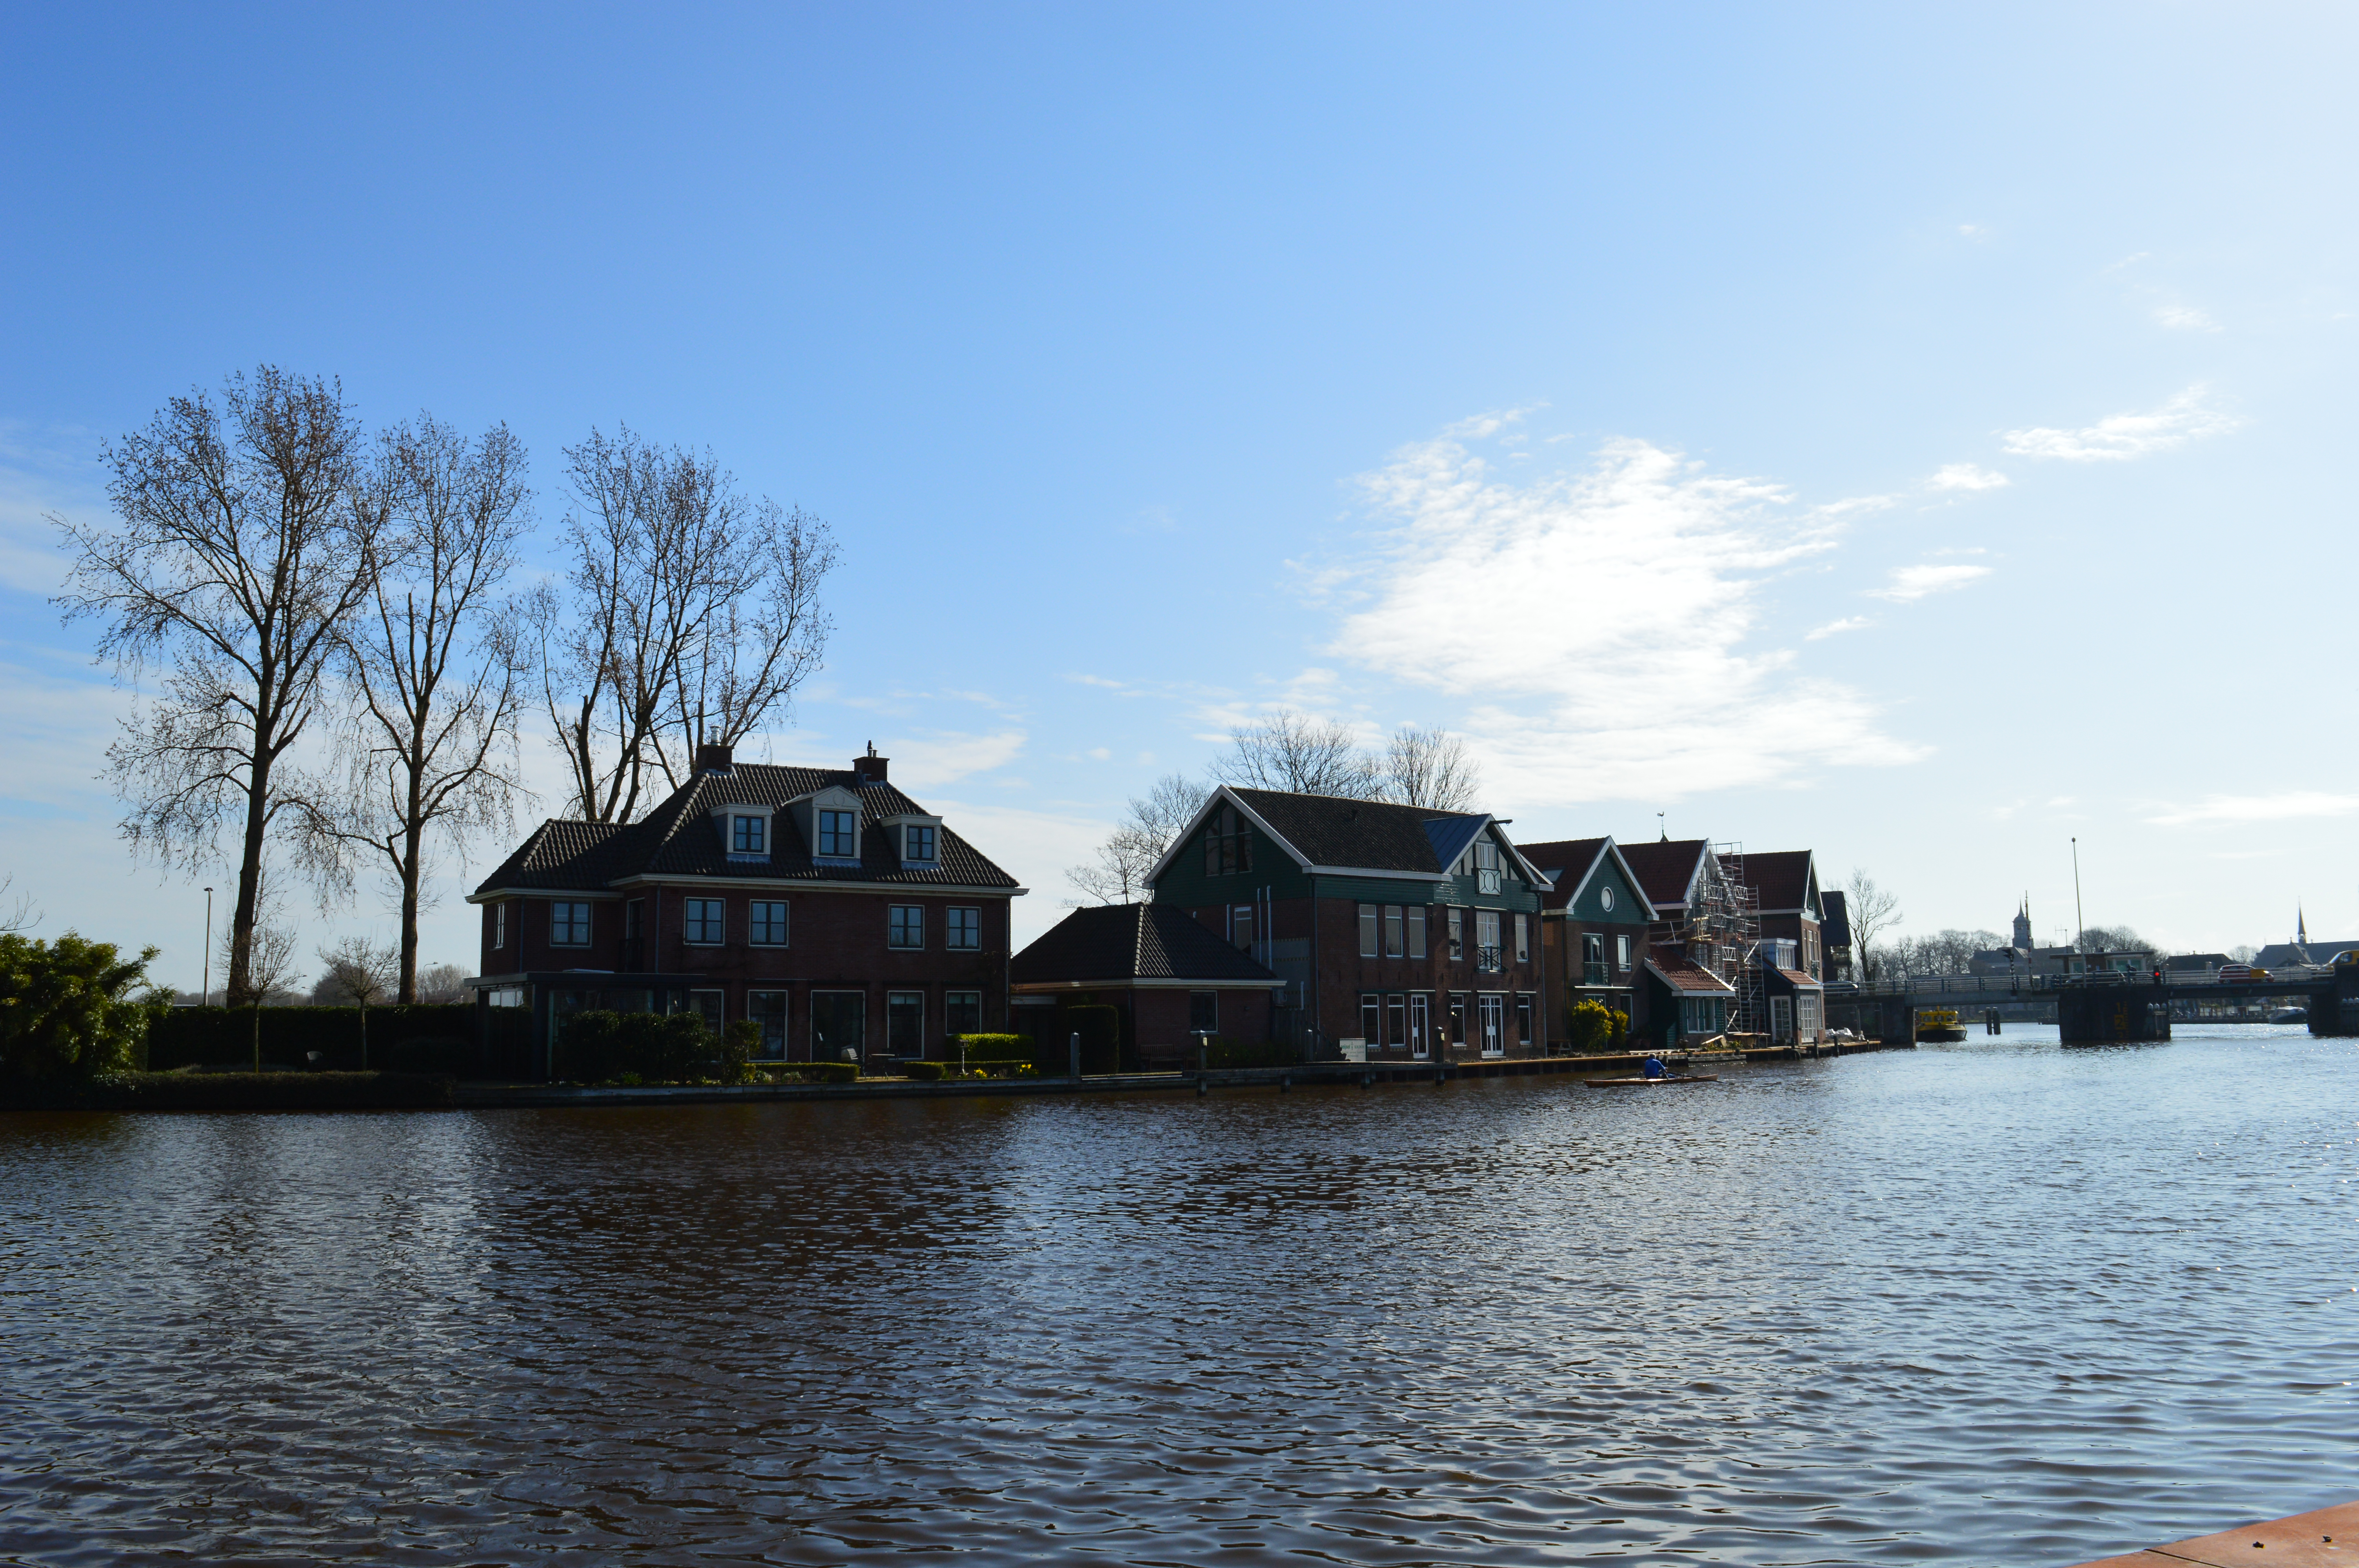 A sunny day on the Amstel river in Amsterdam, the Netherlands